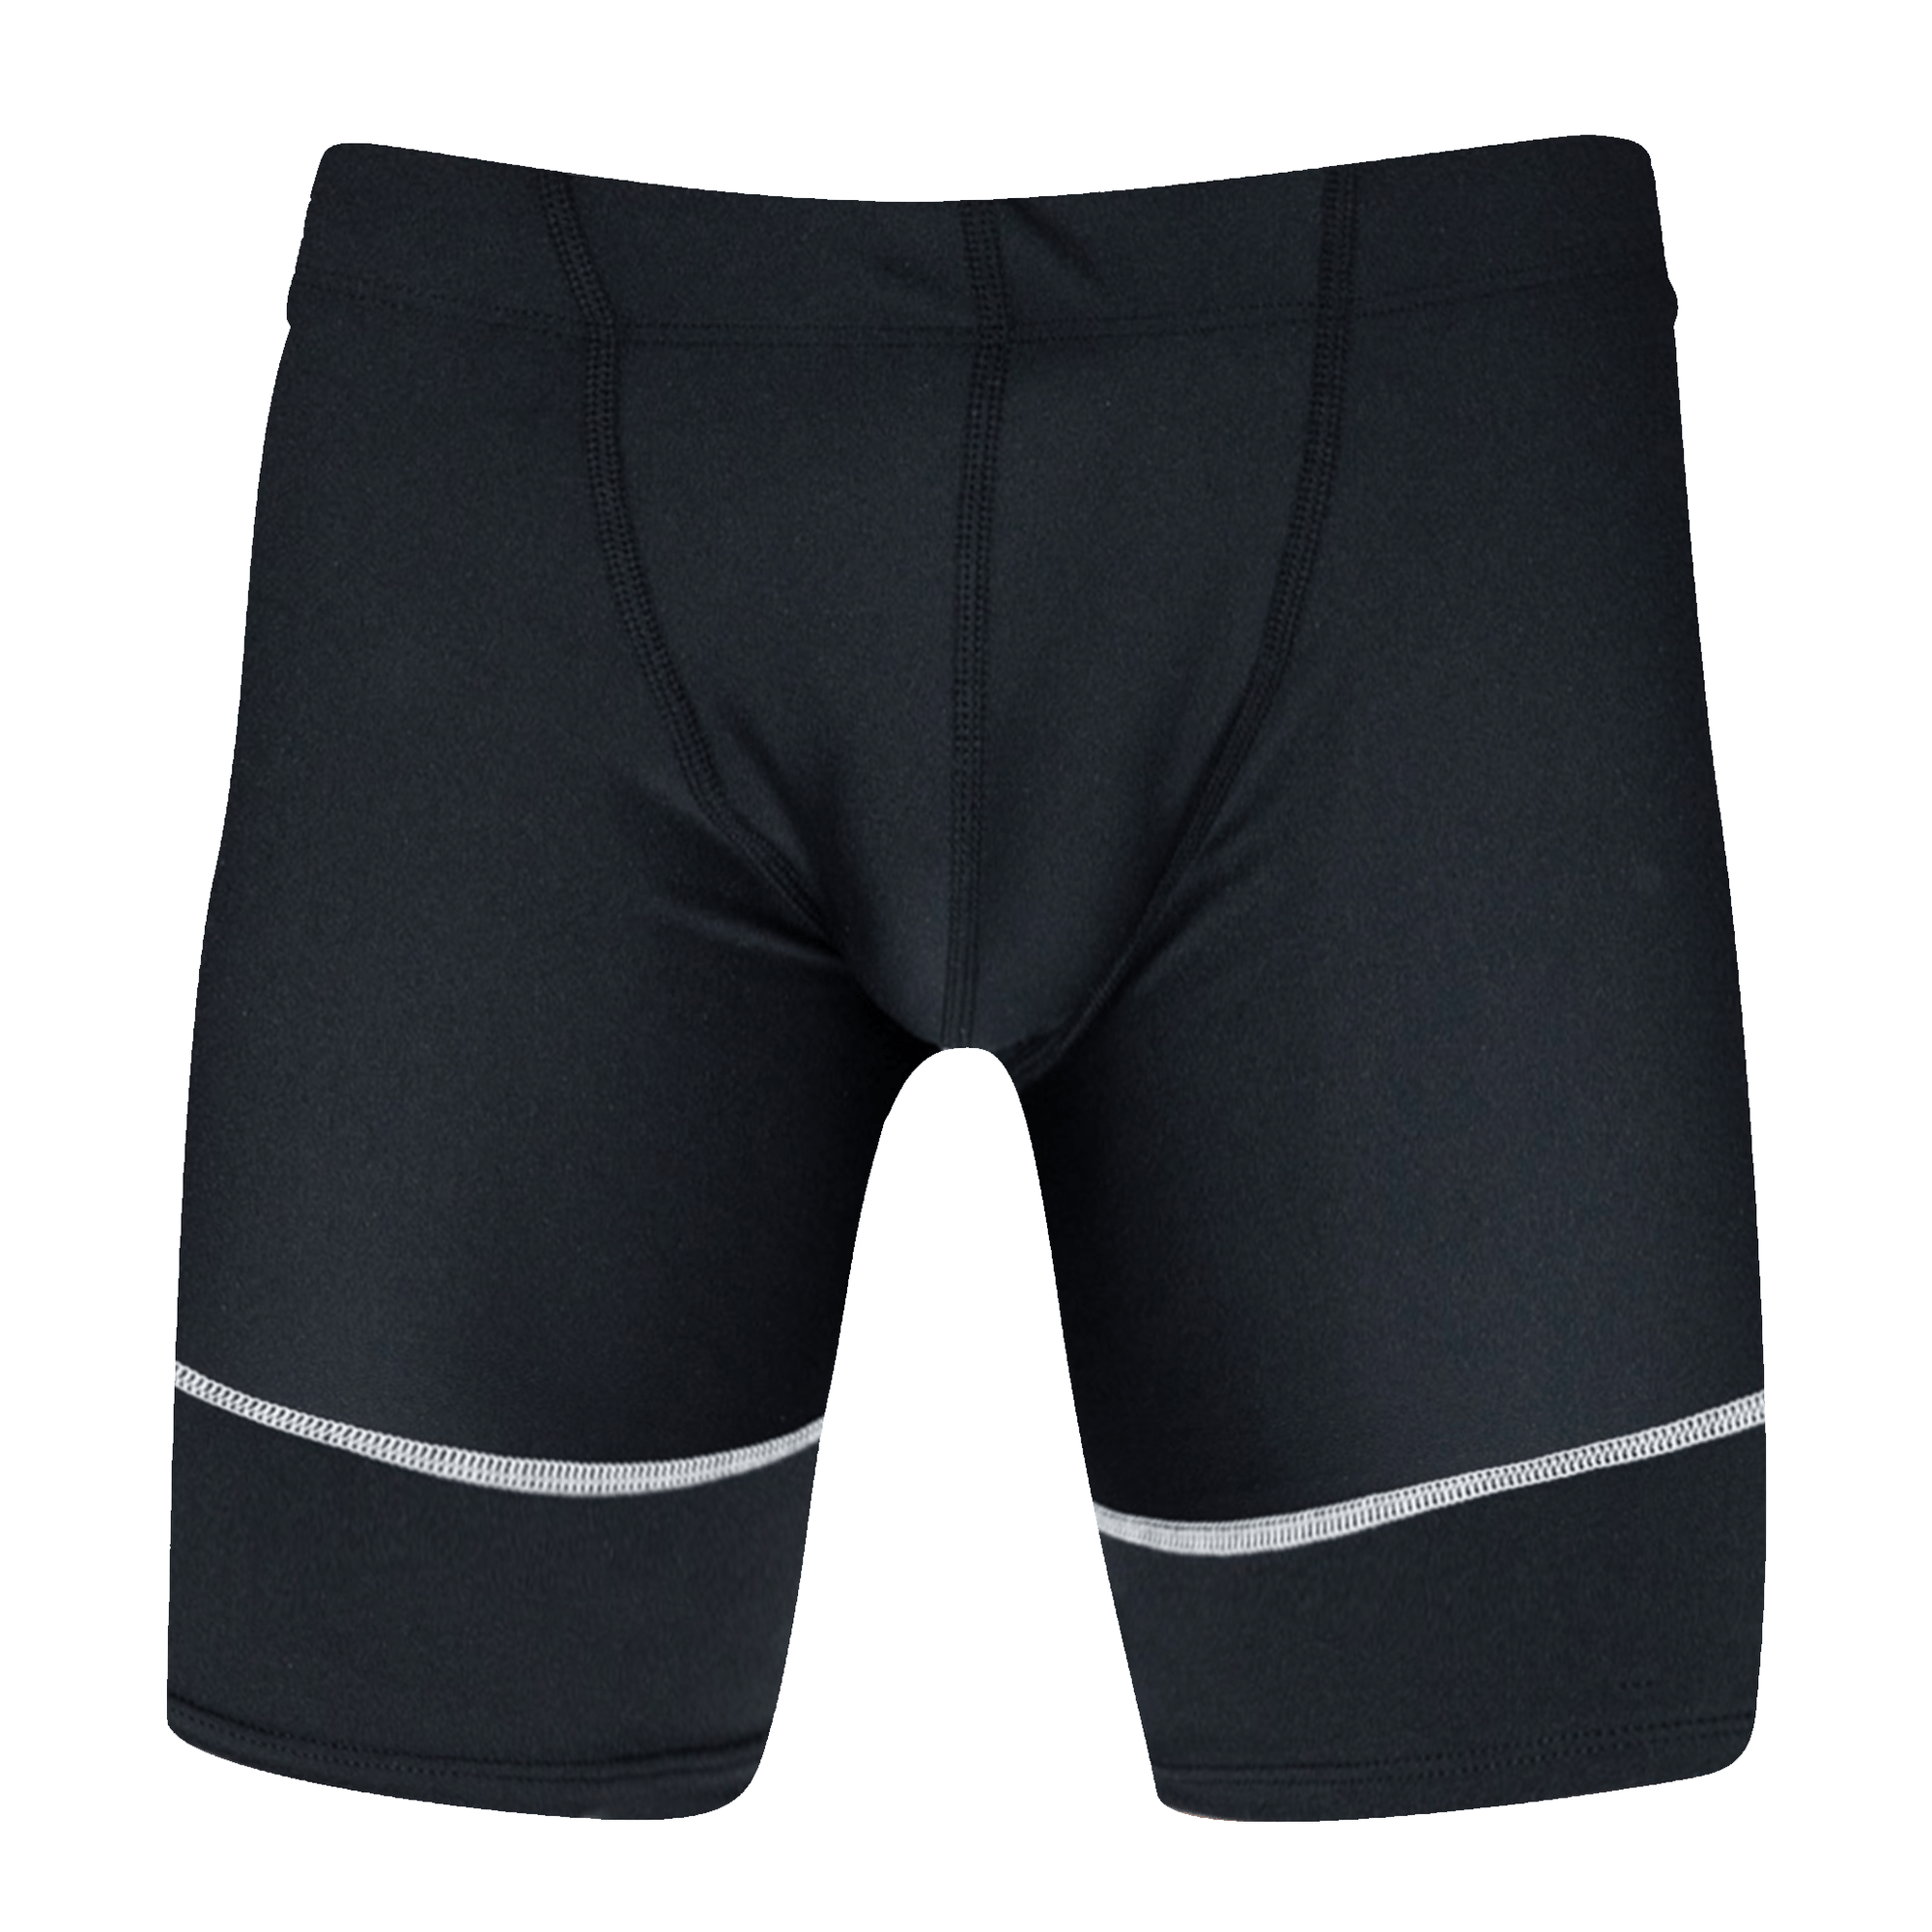 Body Science Men's Half Quad Compression Shorts